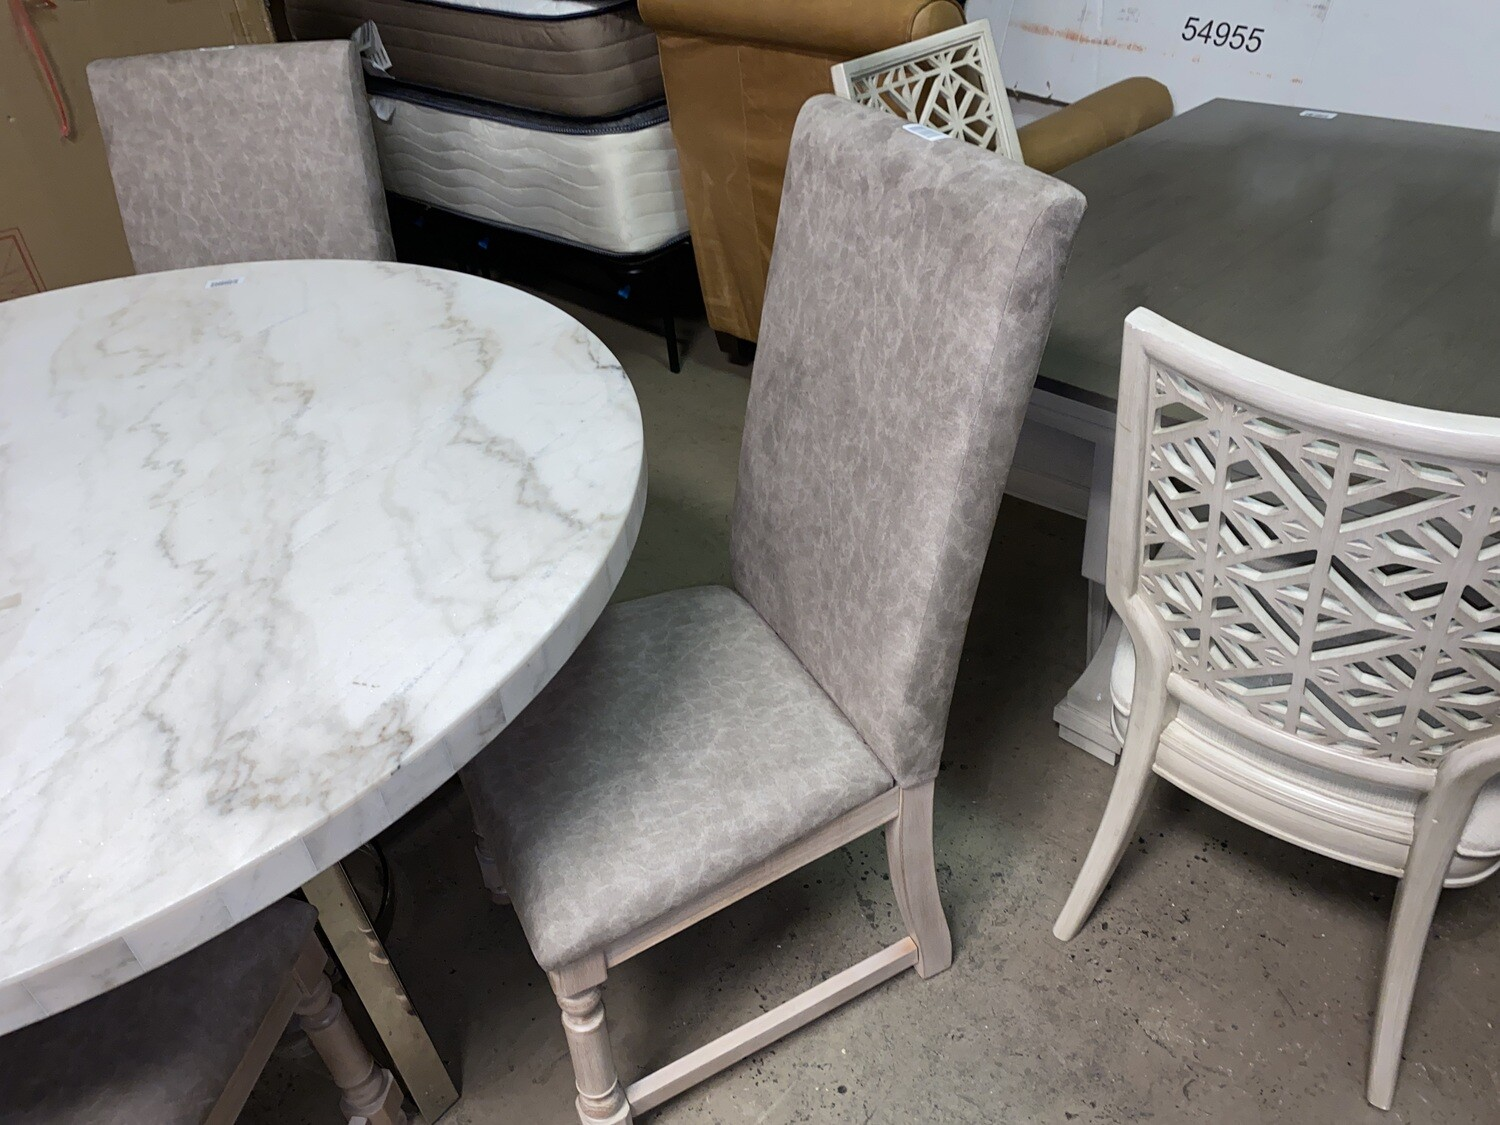 Stanley Furniture Chairs - Beige Legs - 4 included